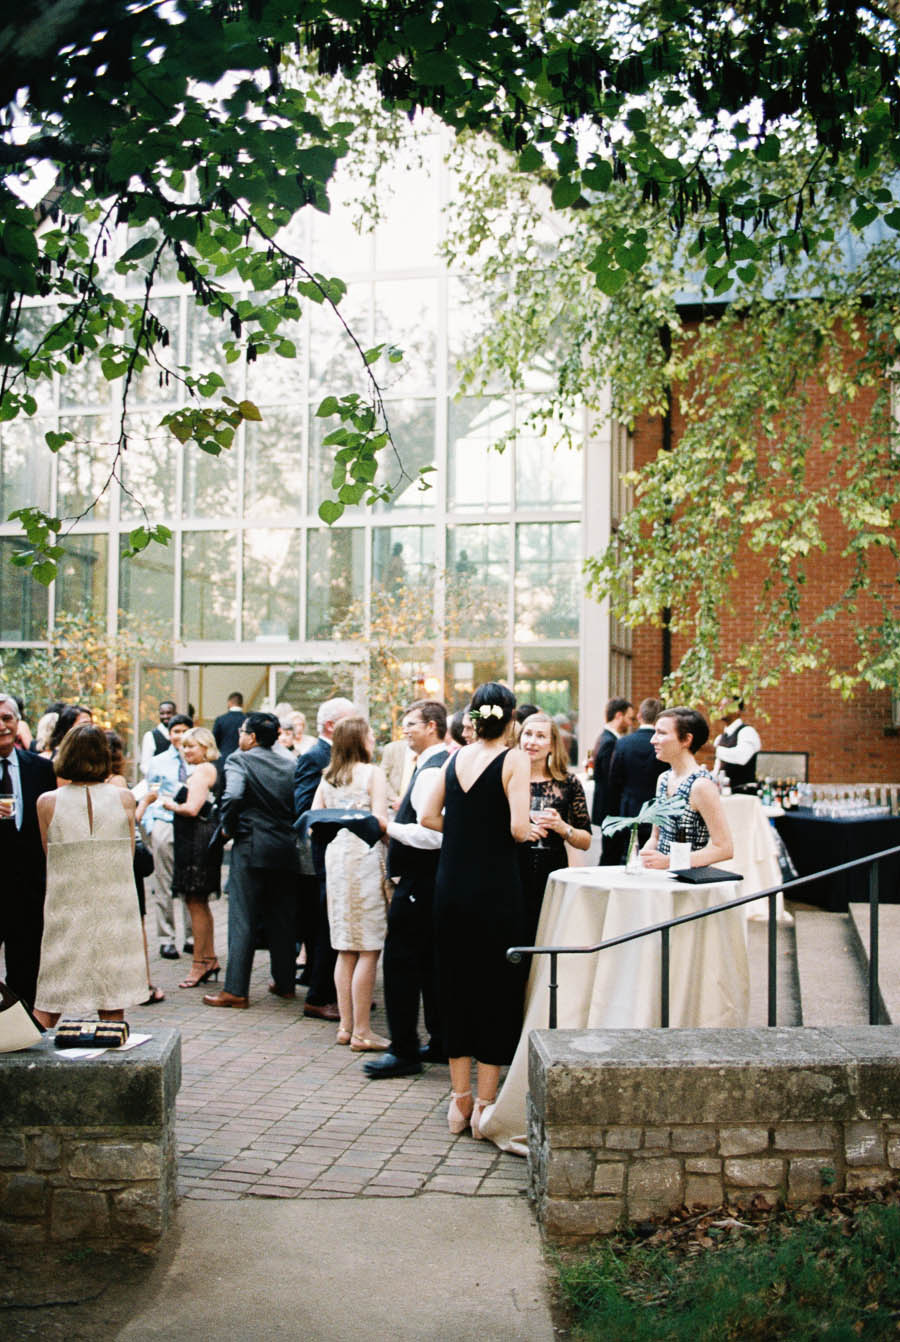 cheekwood film documentary wedding photographers nashville natural light autumn wedding classic ©2016abigailbobophotography-55.jpg